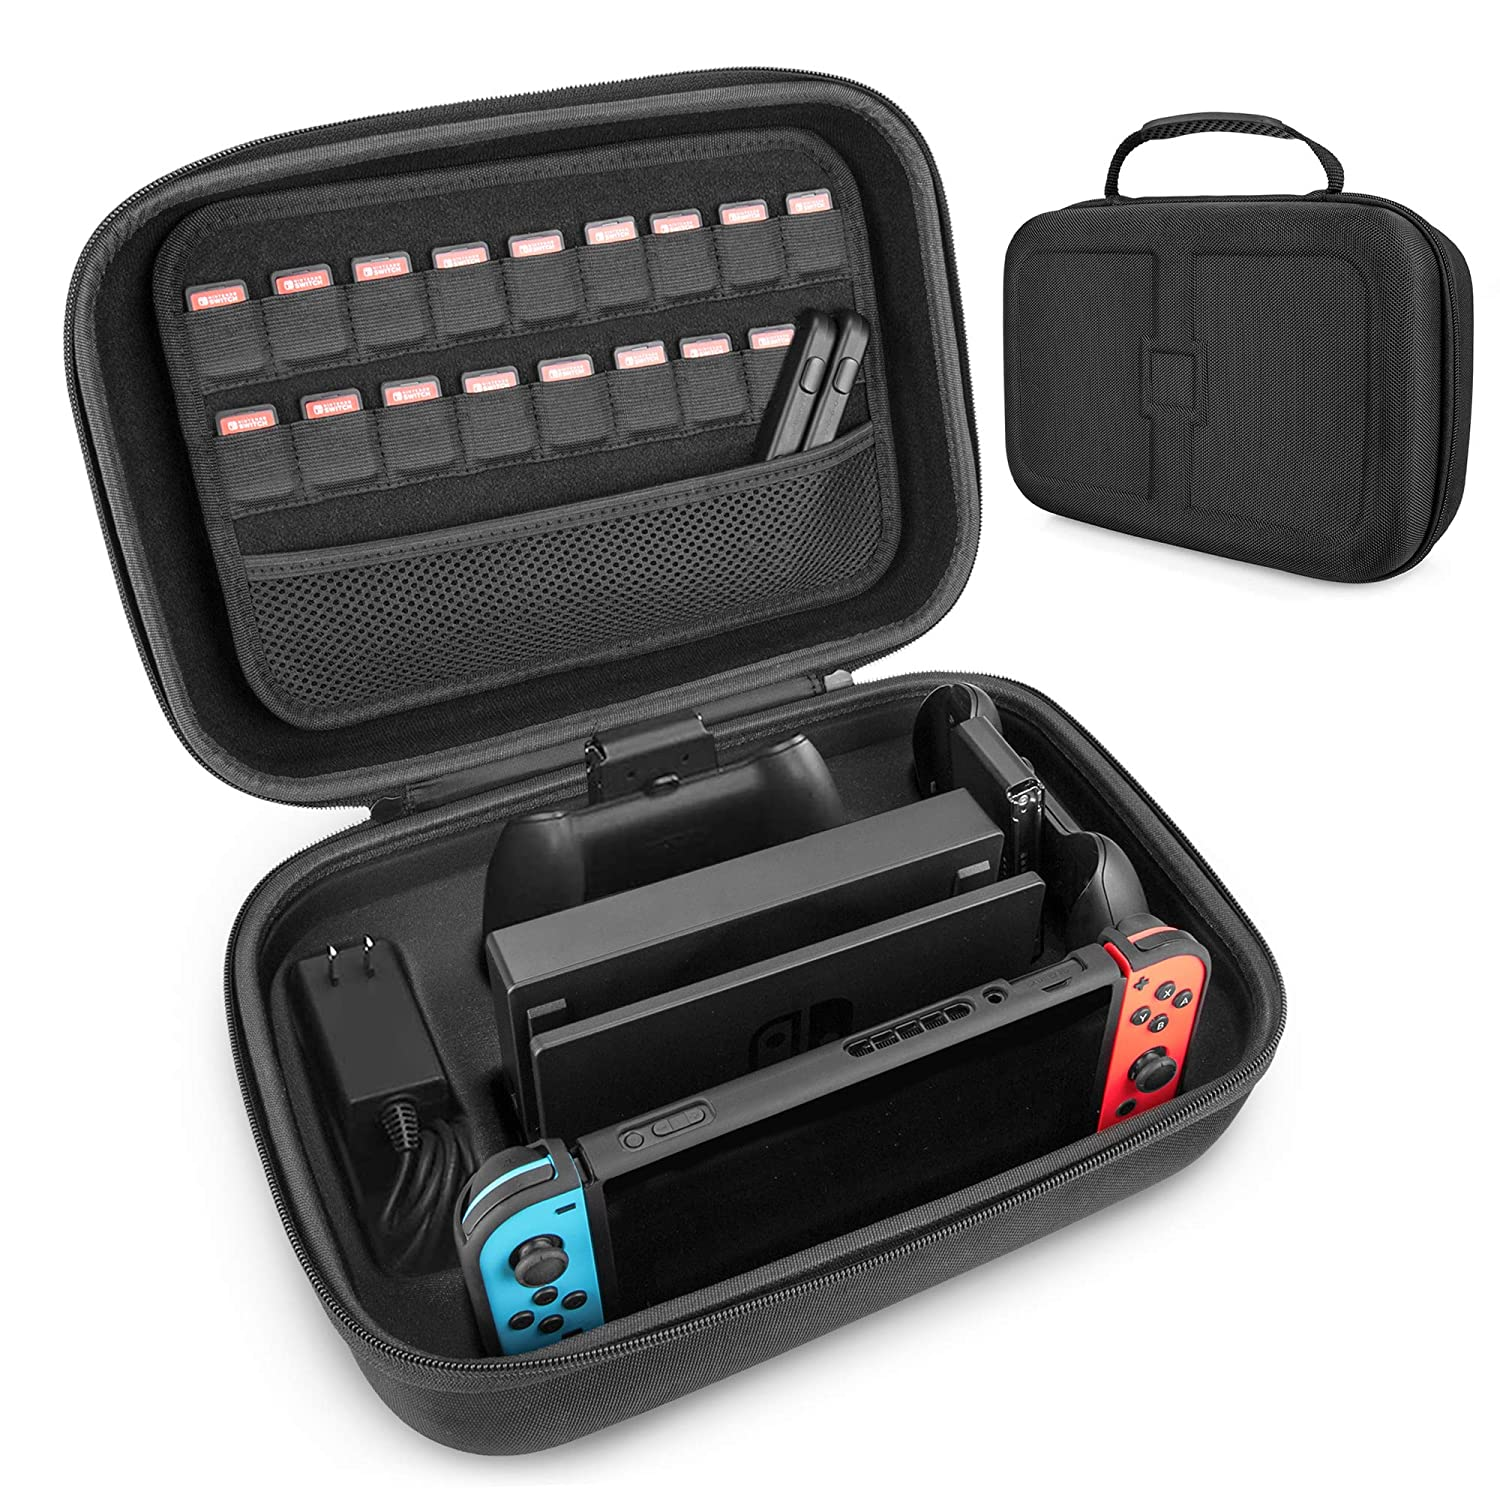 Carrying Storage Case for Nintendo Switch, LP Portable Travel Case Protective Hard Shell Bag with Separate Storage Space for Switch Console, Pro Controller, Switch Dock, AC Adapter Cable & Accessories: Video Games